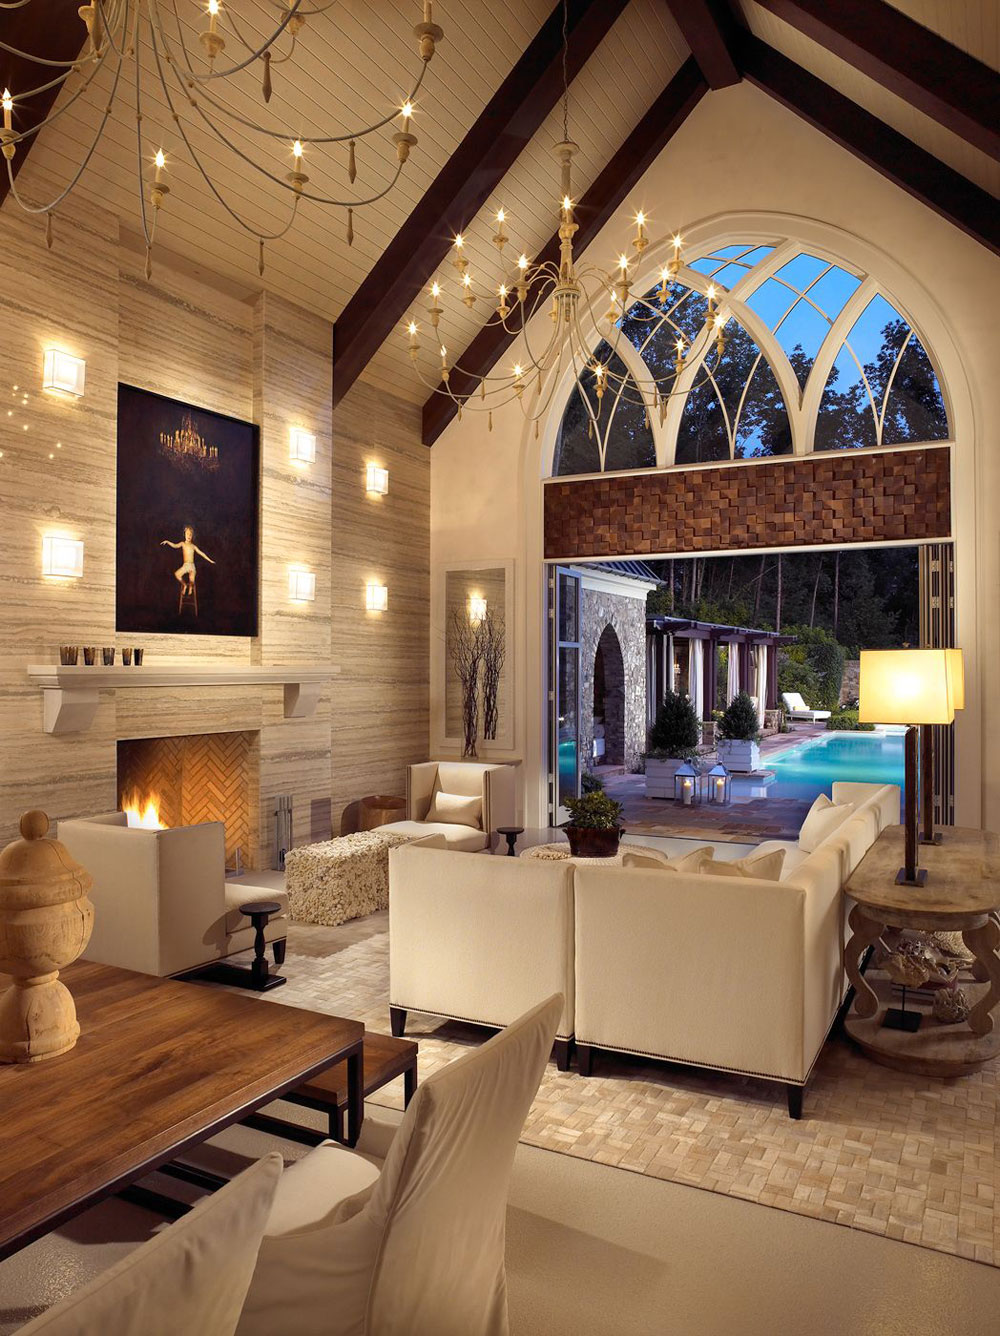 Living room lighting ideas vaulted ceilings - Vaulted Ceiling Living Room Design Ideas 1 Vaulted Ceiling Living